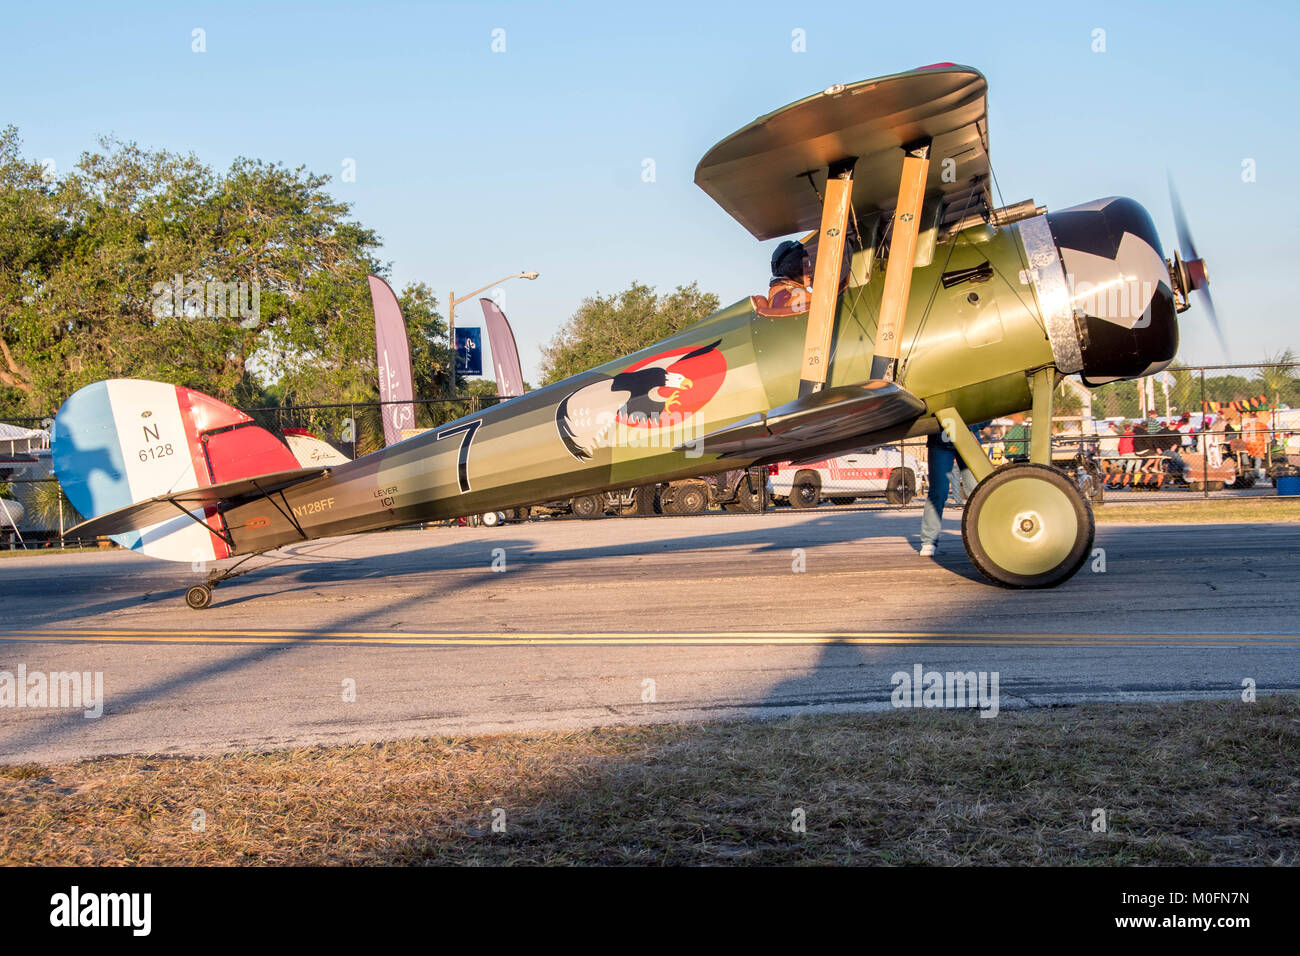 A traditional propellor driven plane, Nieuport 28, prepares for takeoff - Stock Image